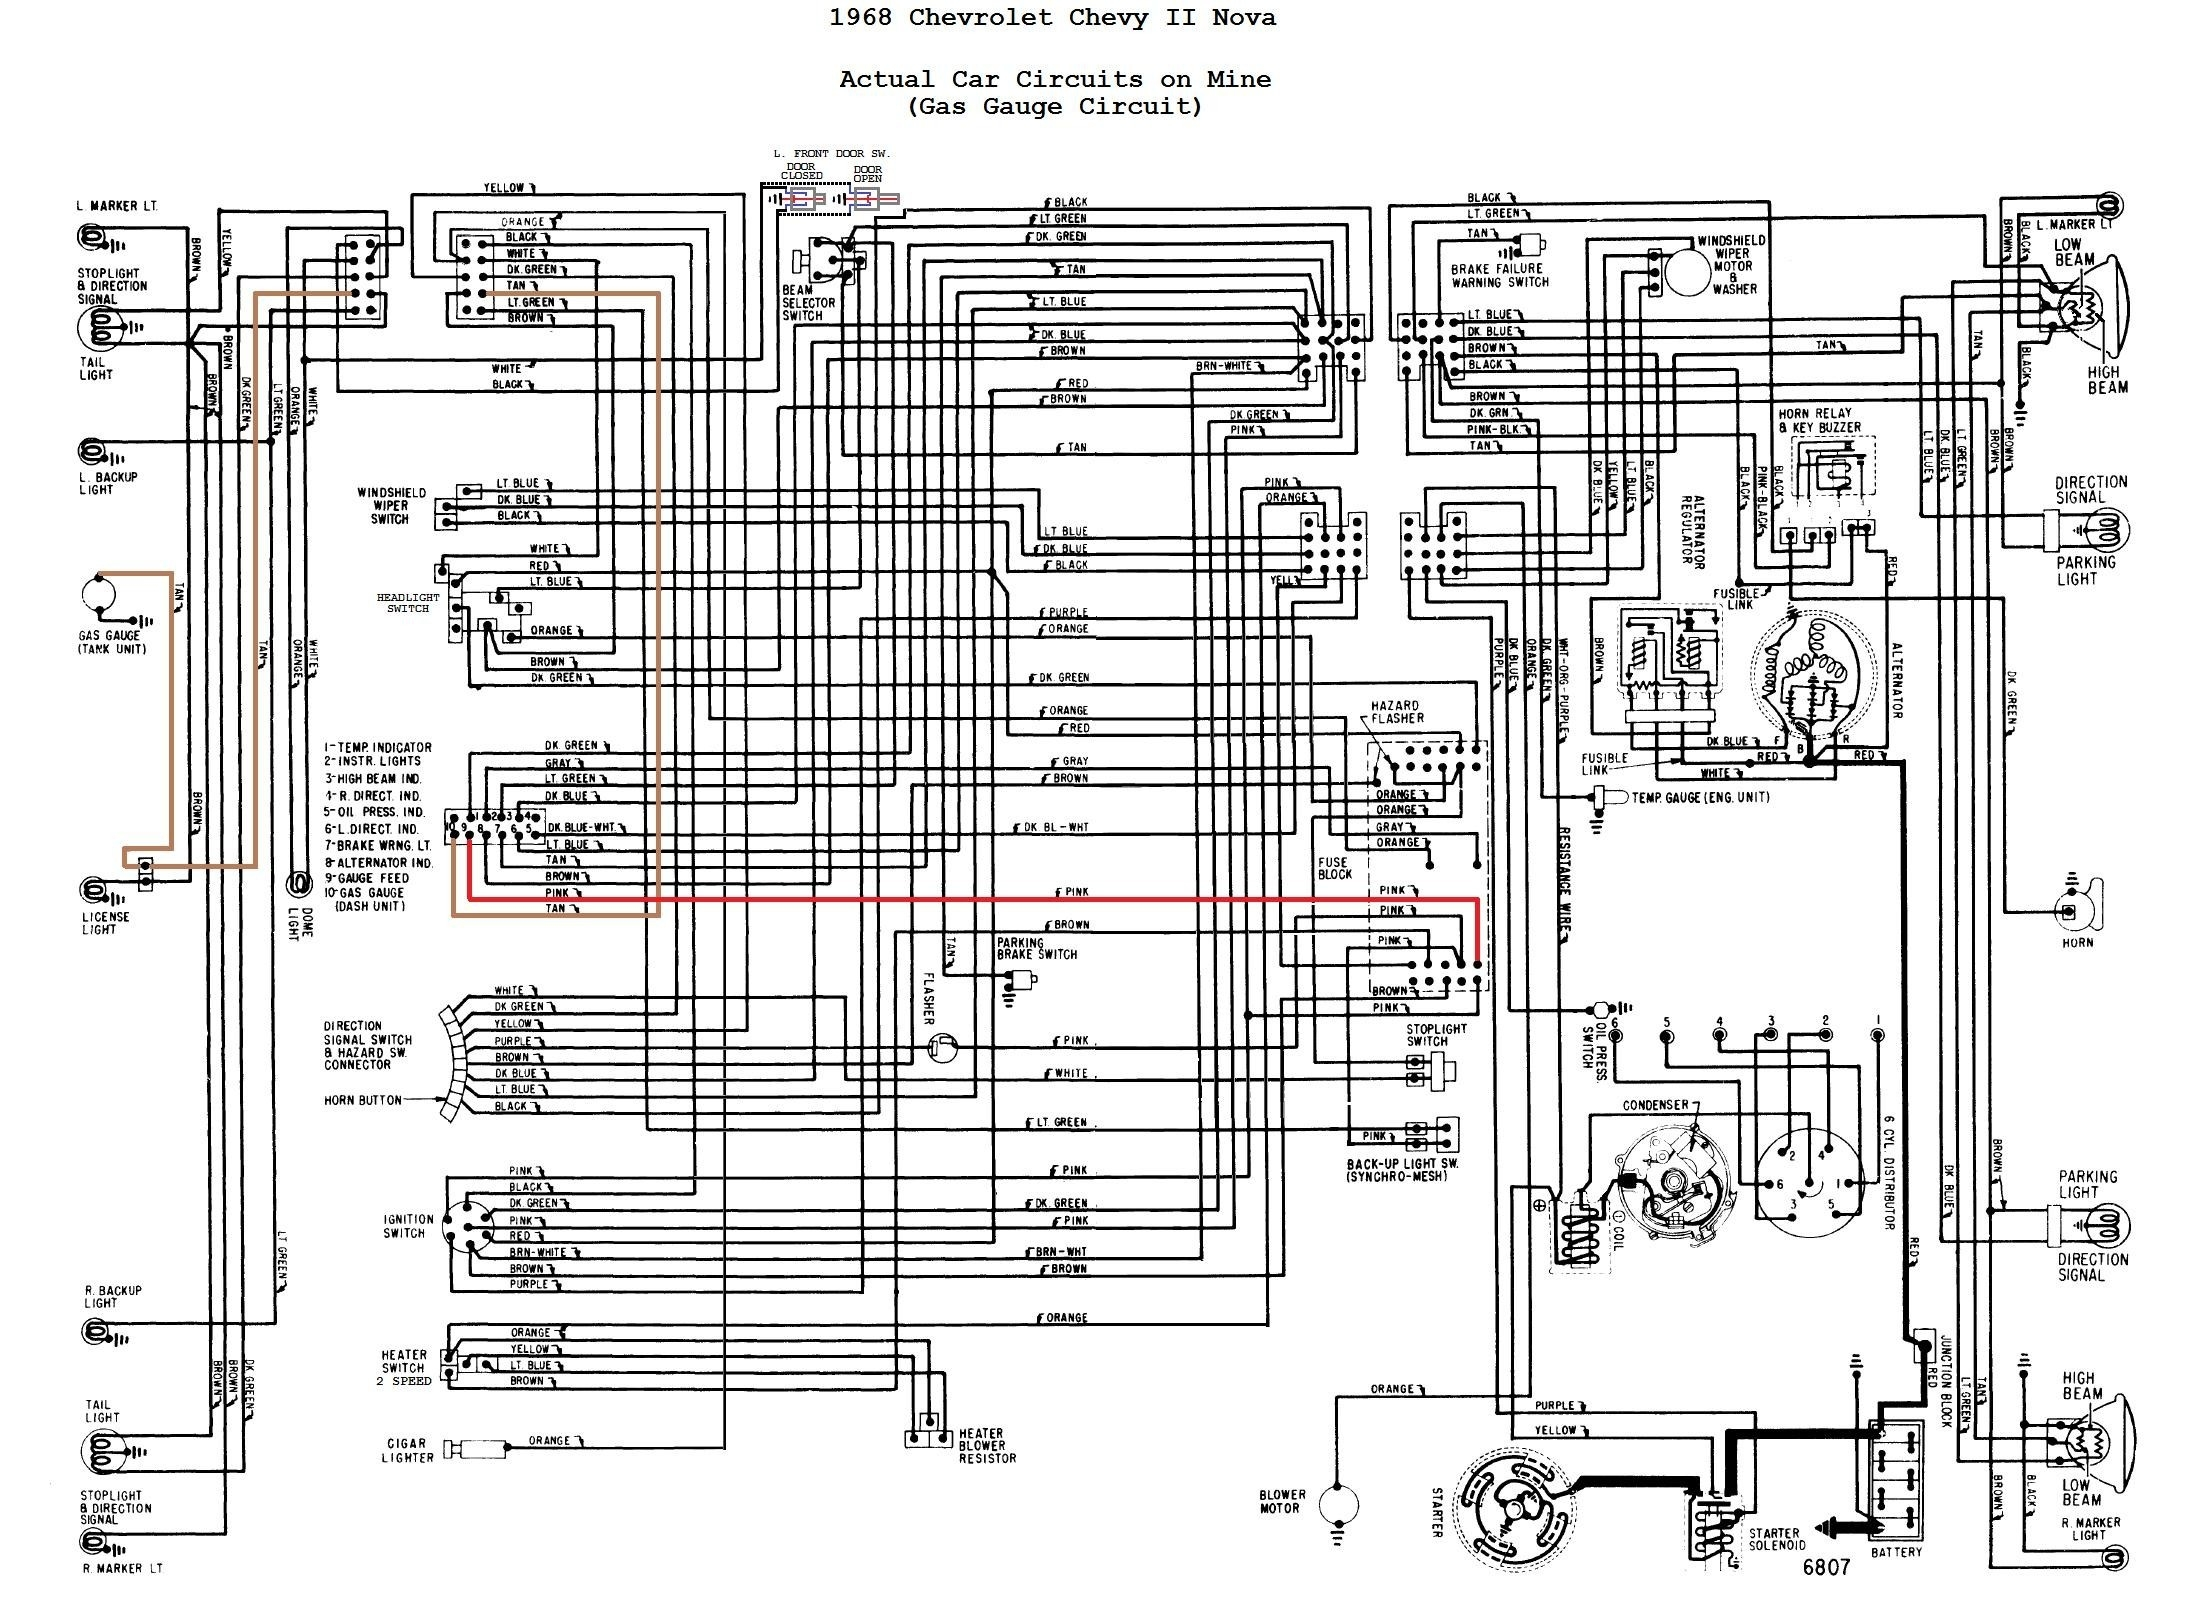 1967 firebird wiring diagram | free wiring diagram 1967 nova dash wiring diagram 1967 chevy nova dash wiring diagram